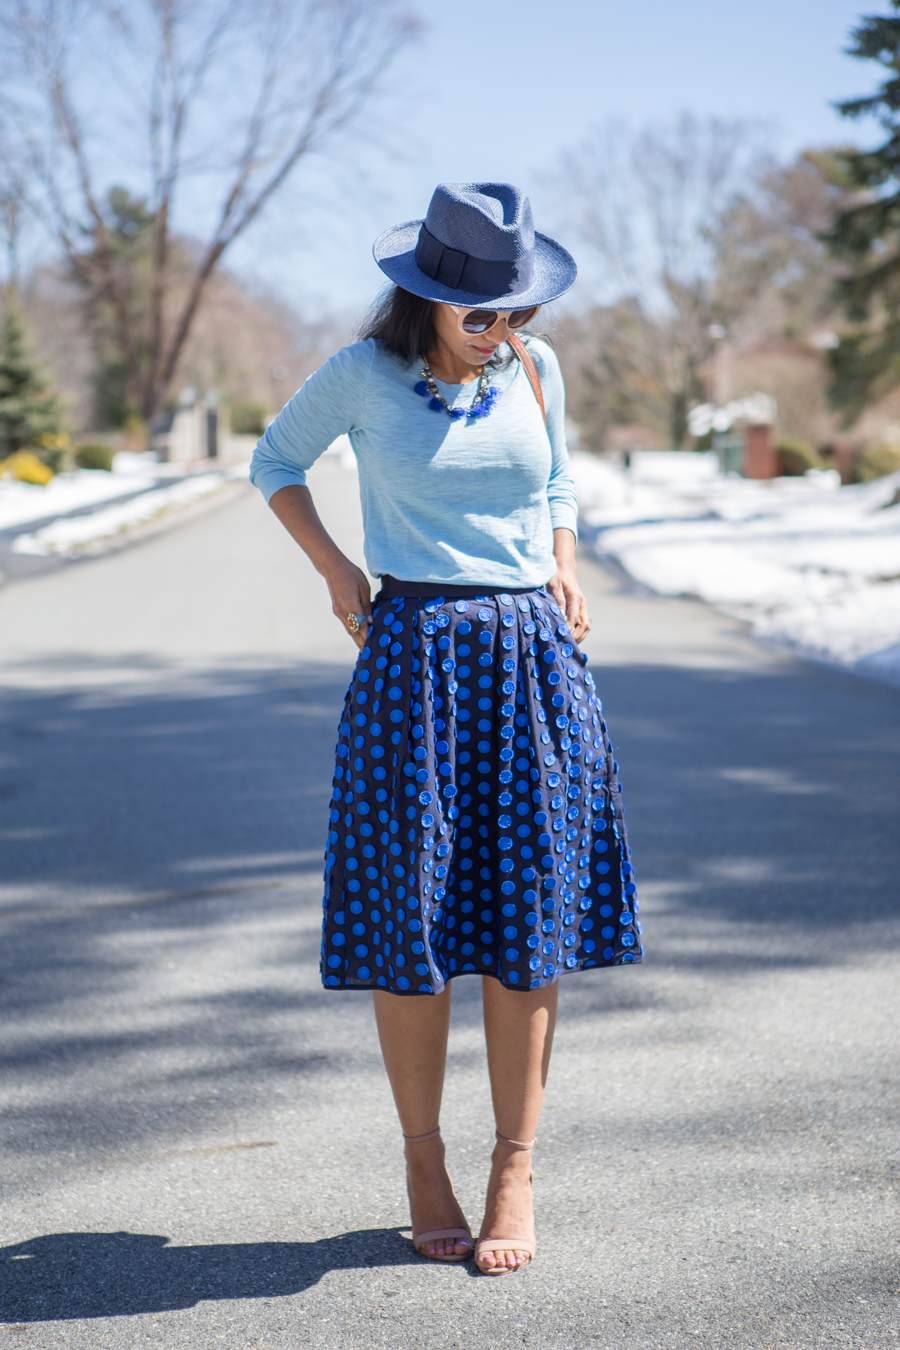 midi skirt, navy hat, spring sweater, petite style, spring style, jcrew, banana republic, feminine style, styling tips, outfit ideas, how to mix and match, blue accessories, color rich, styling tips, petite stylist, boston blogger, petite blogger